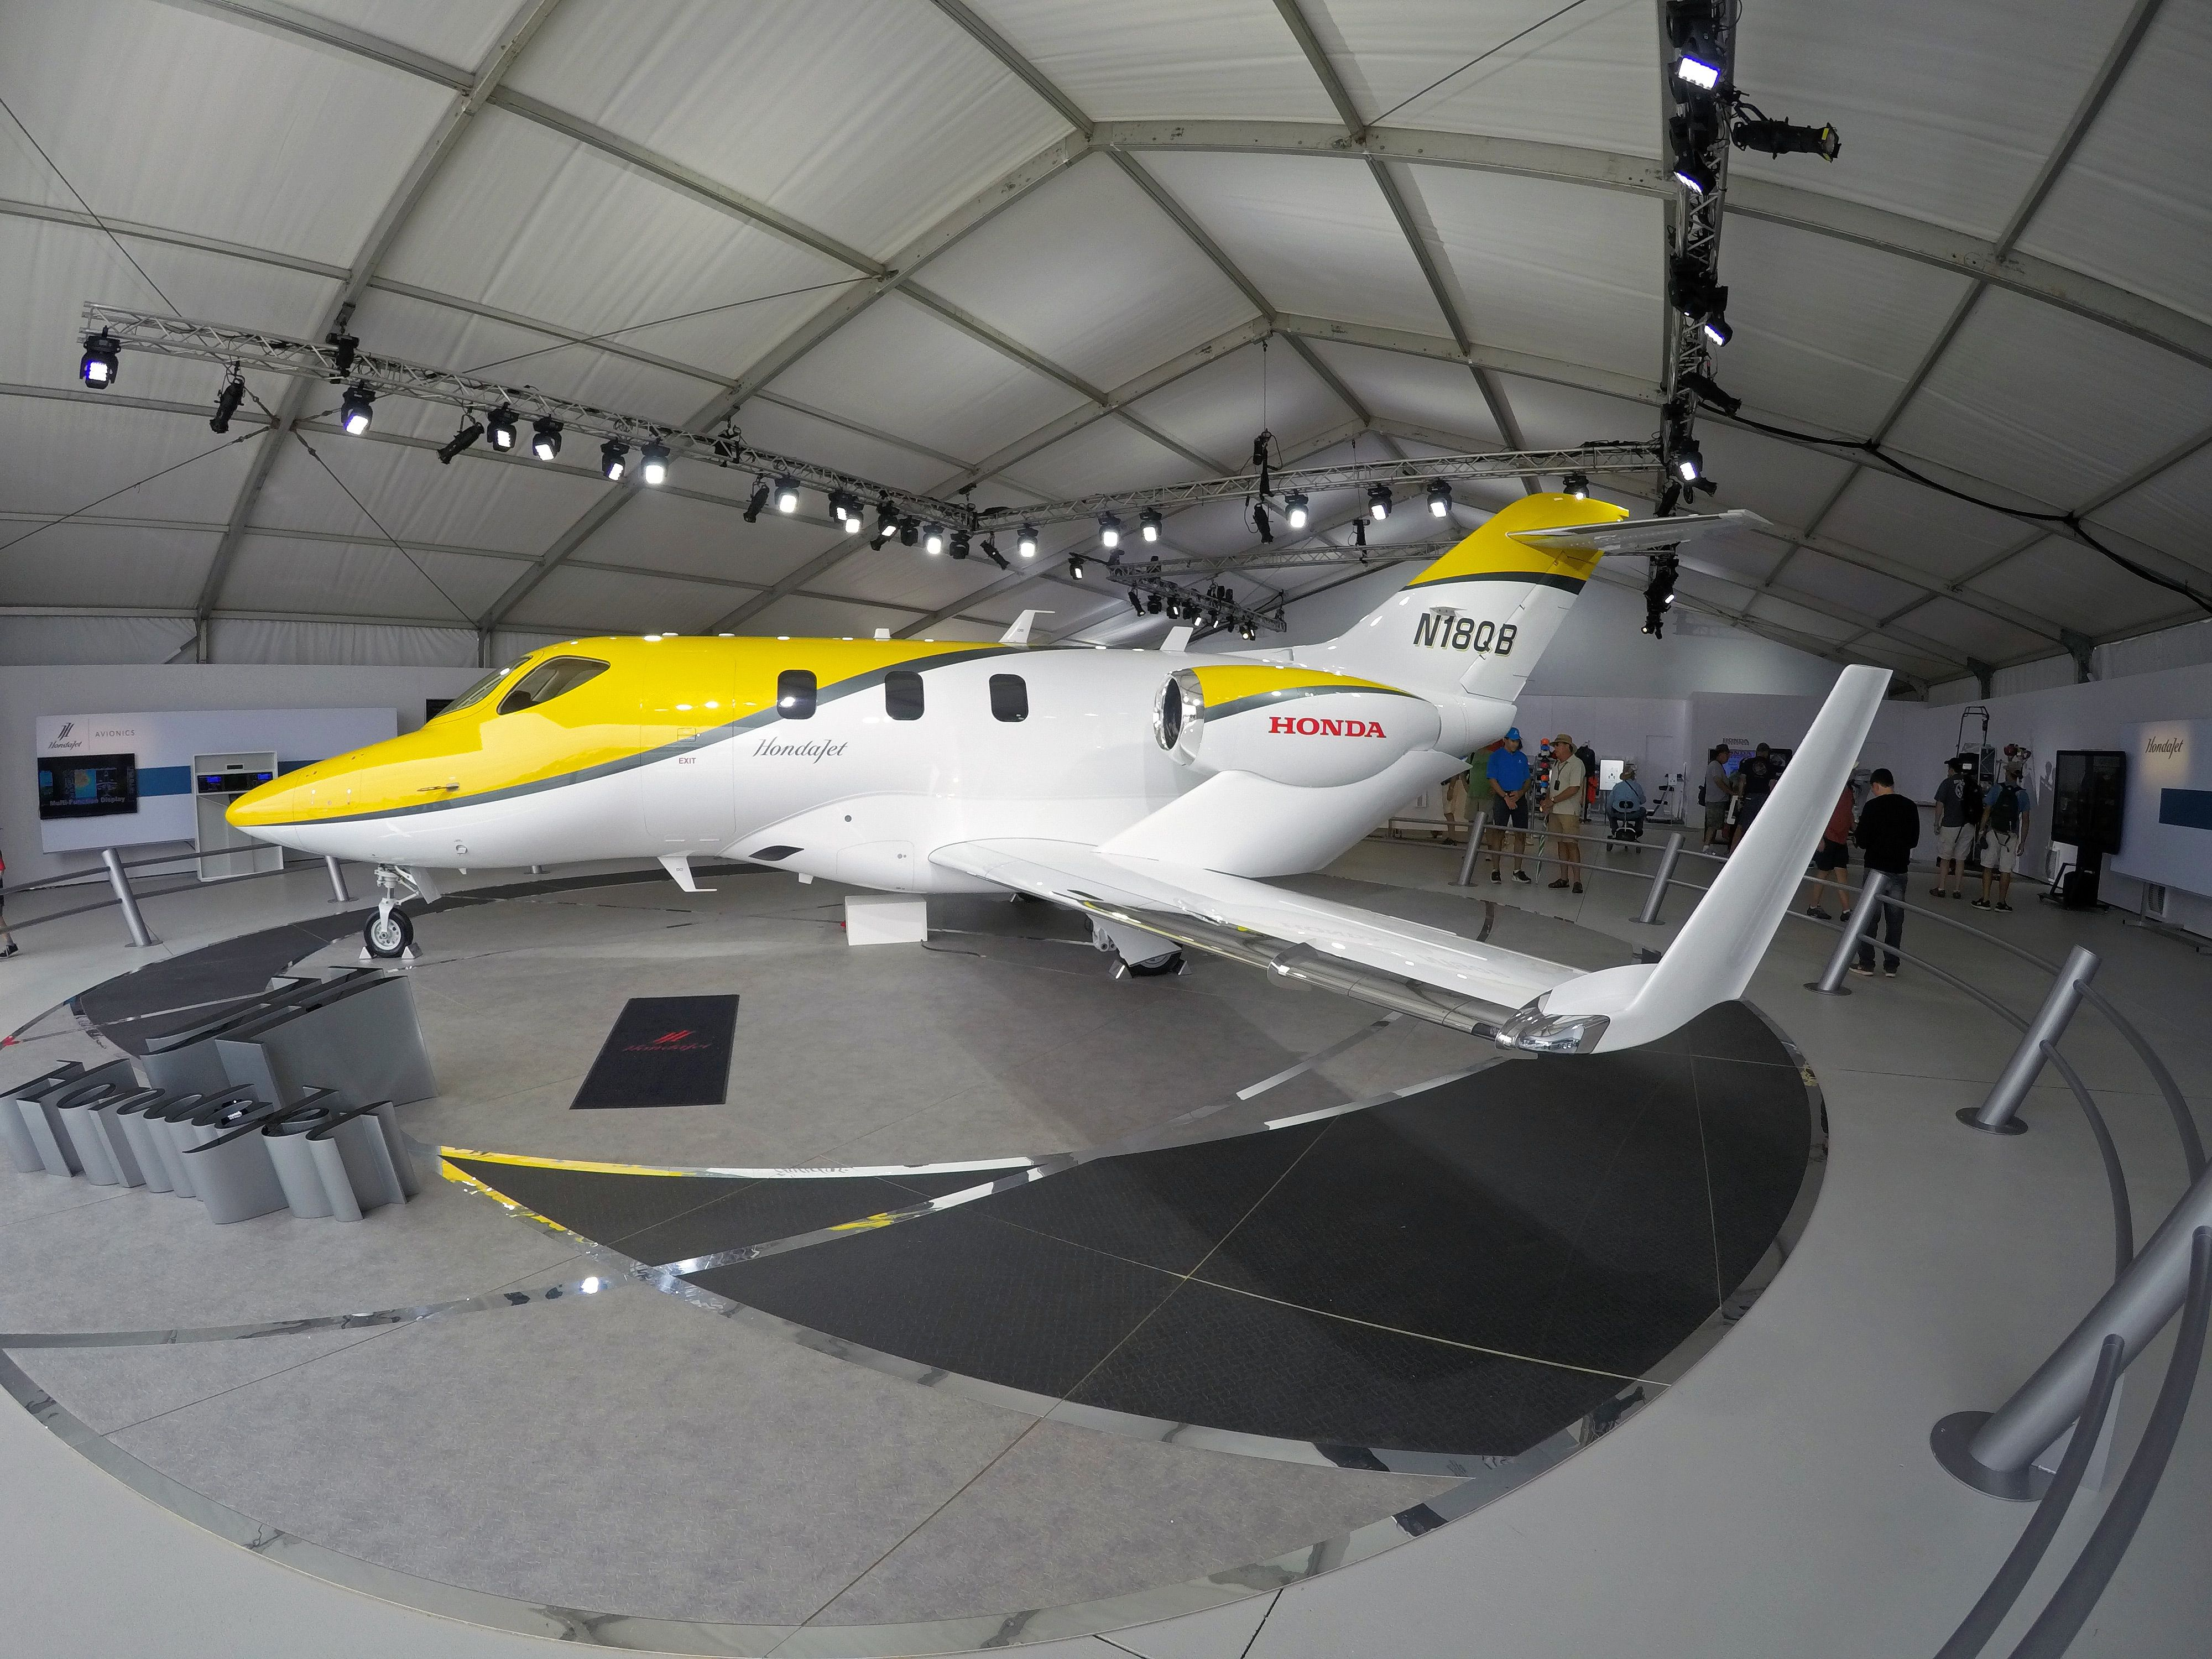 Plane Kaufen Small Jets The Best Very Light Jet Airplanes